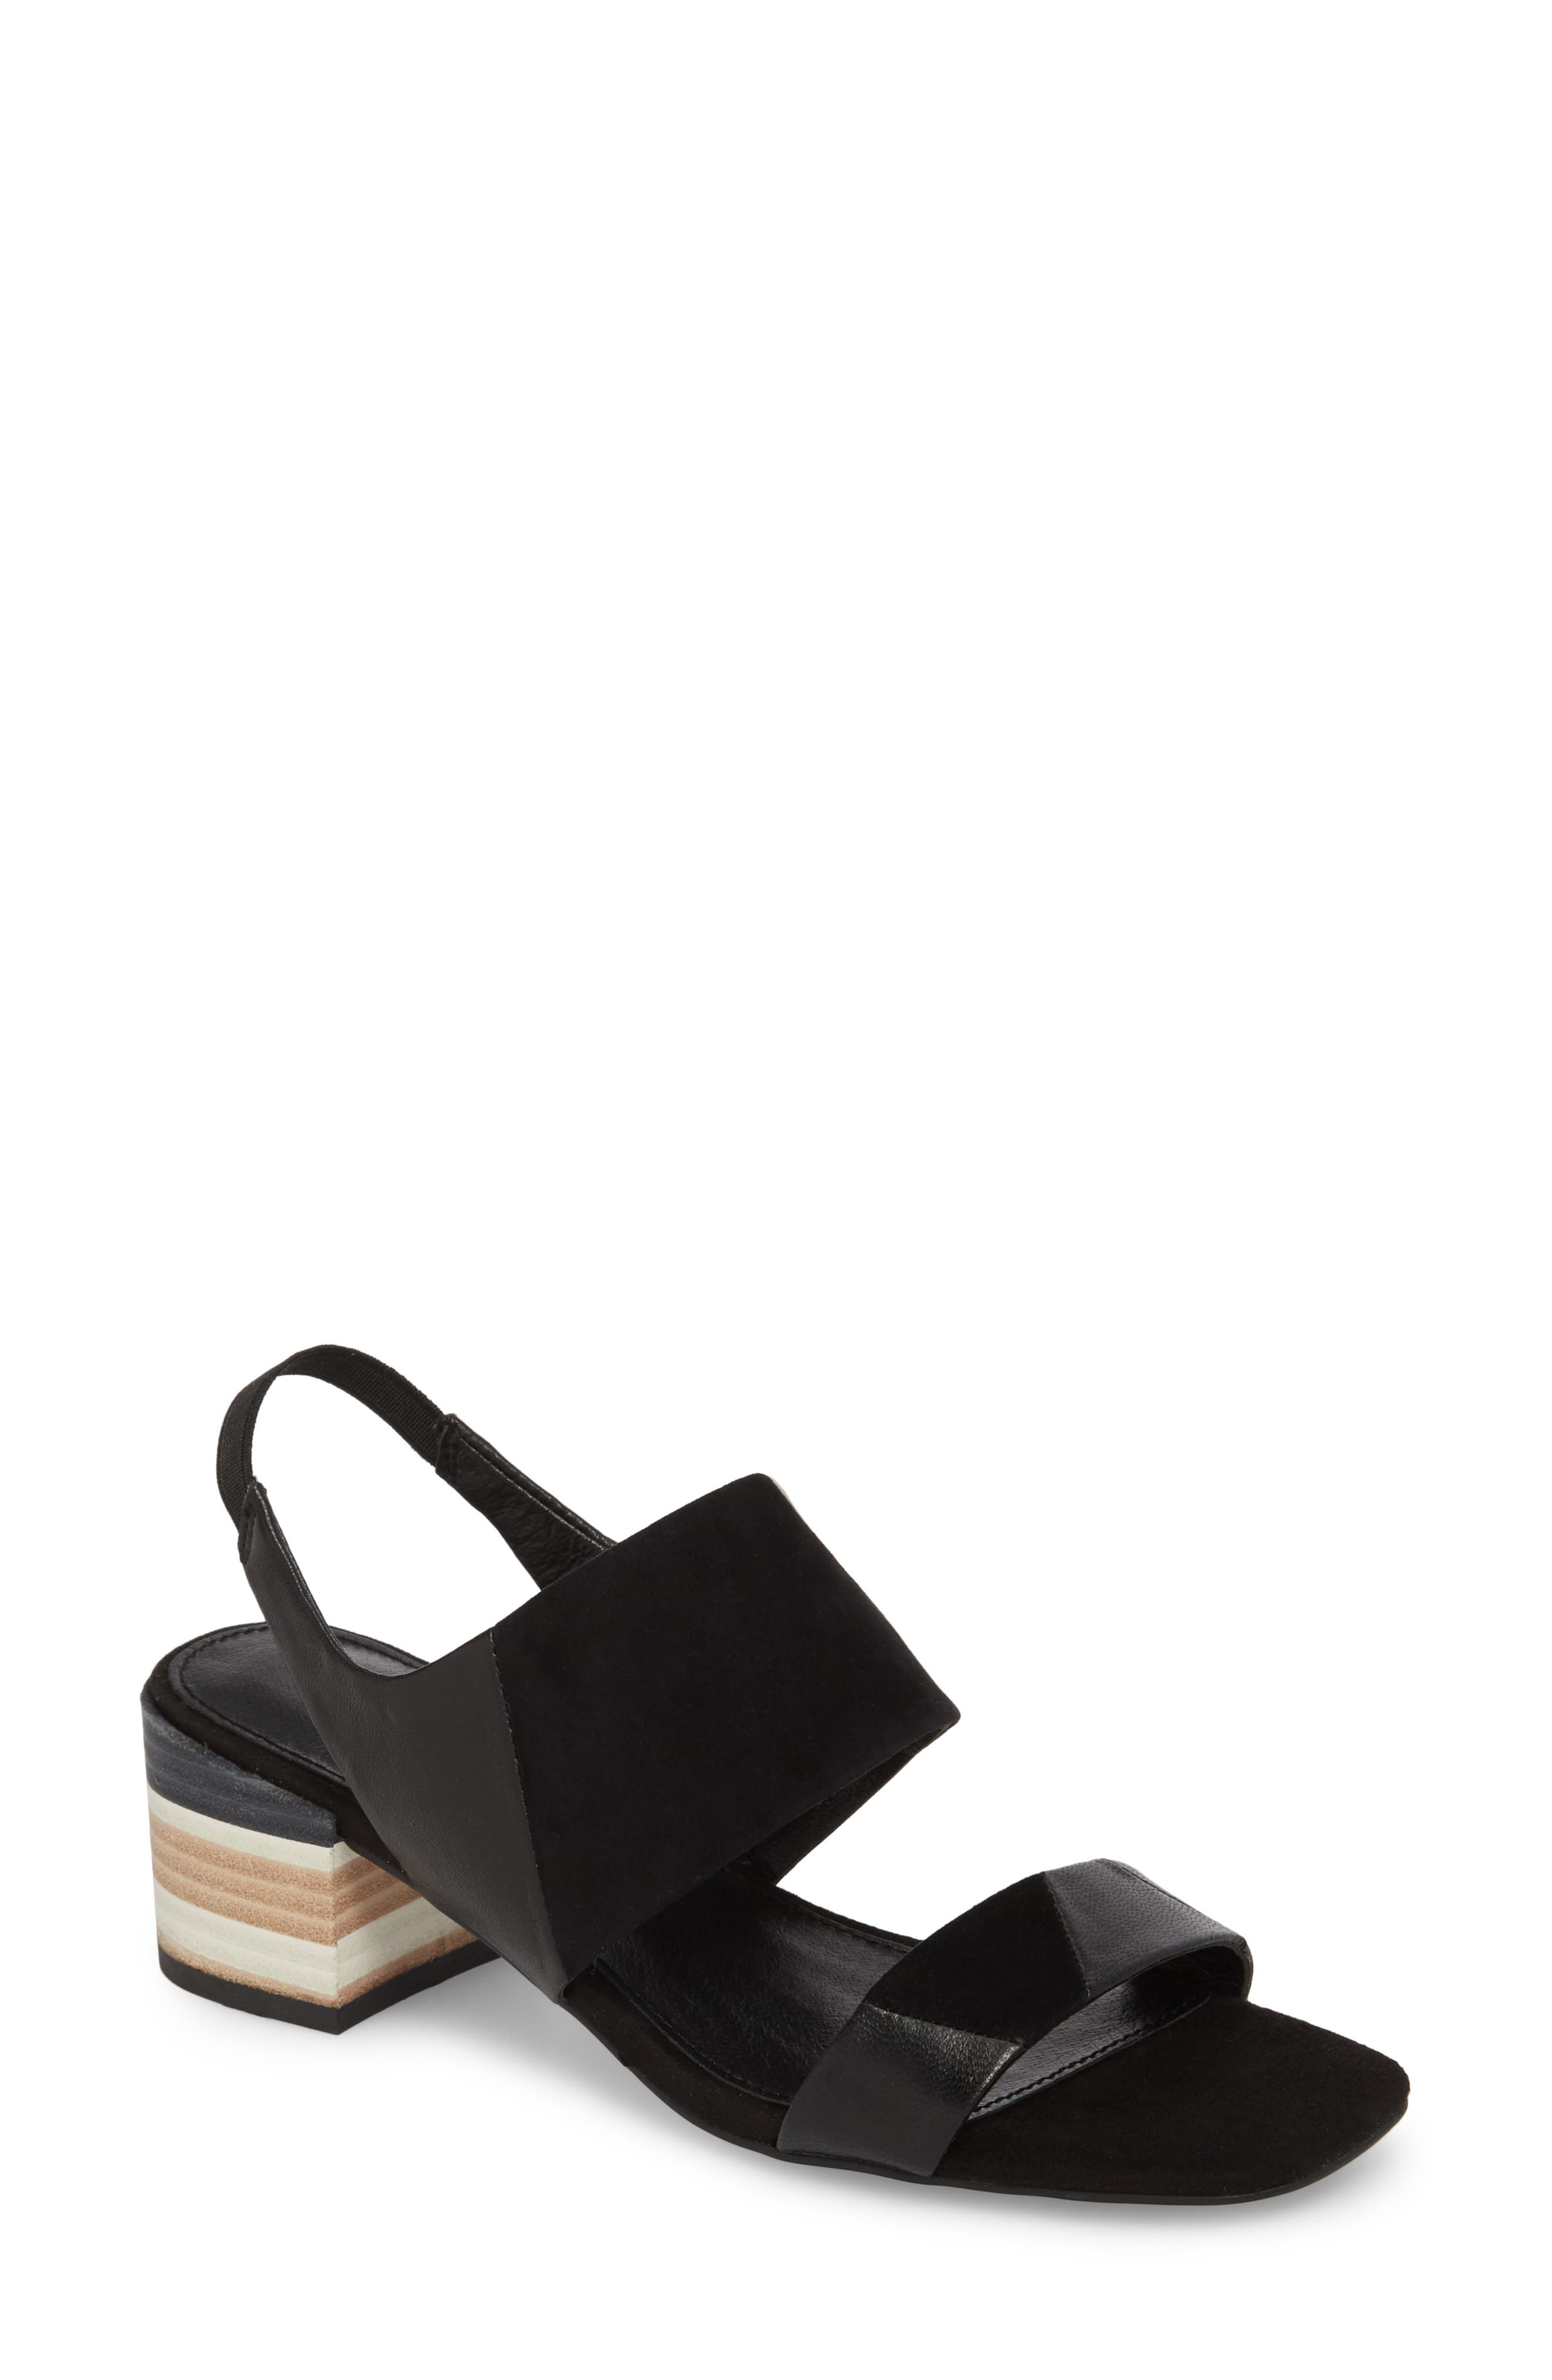 Shiloh Block Heel Sandal, Main, color, 001